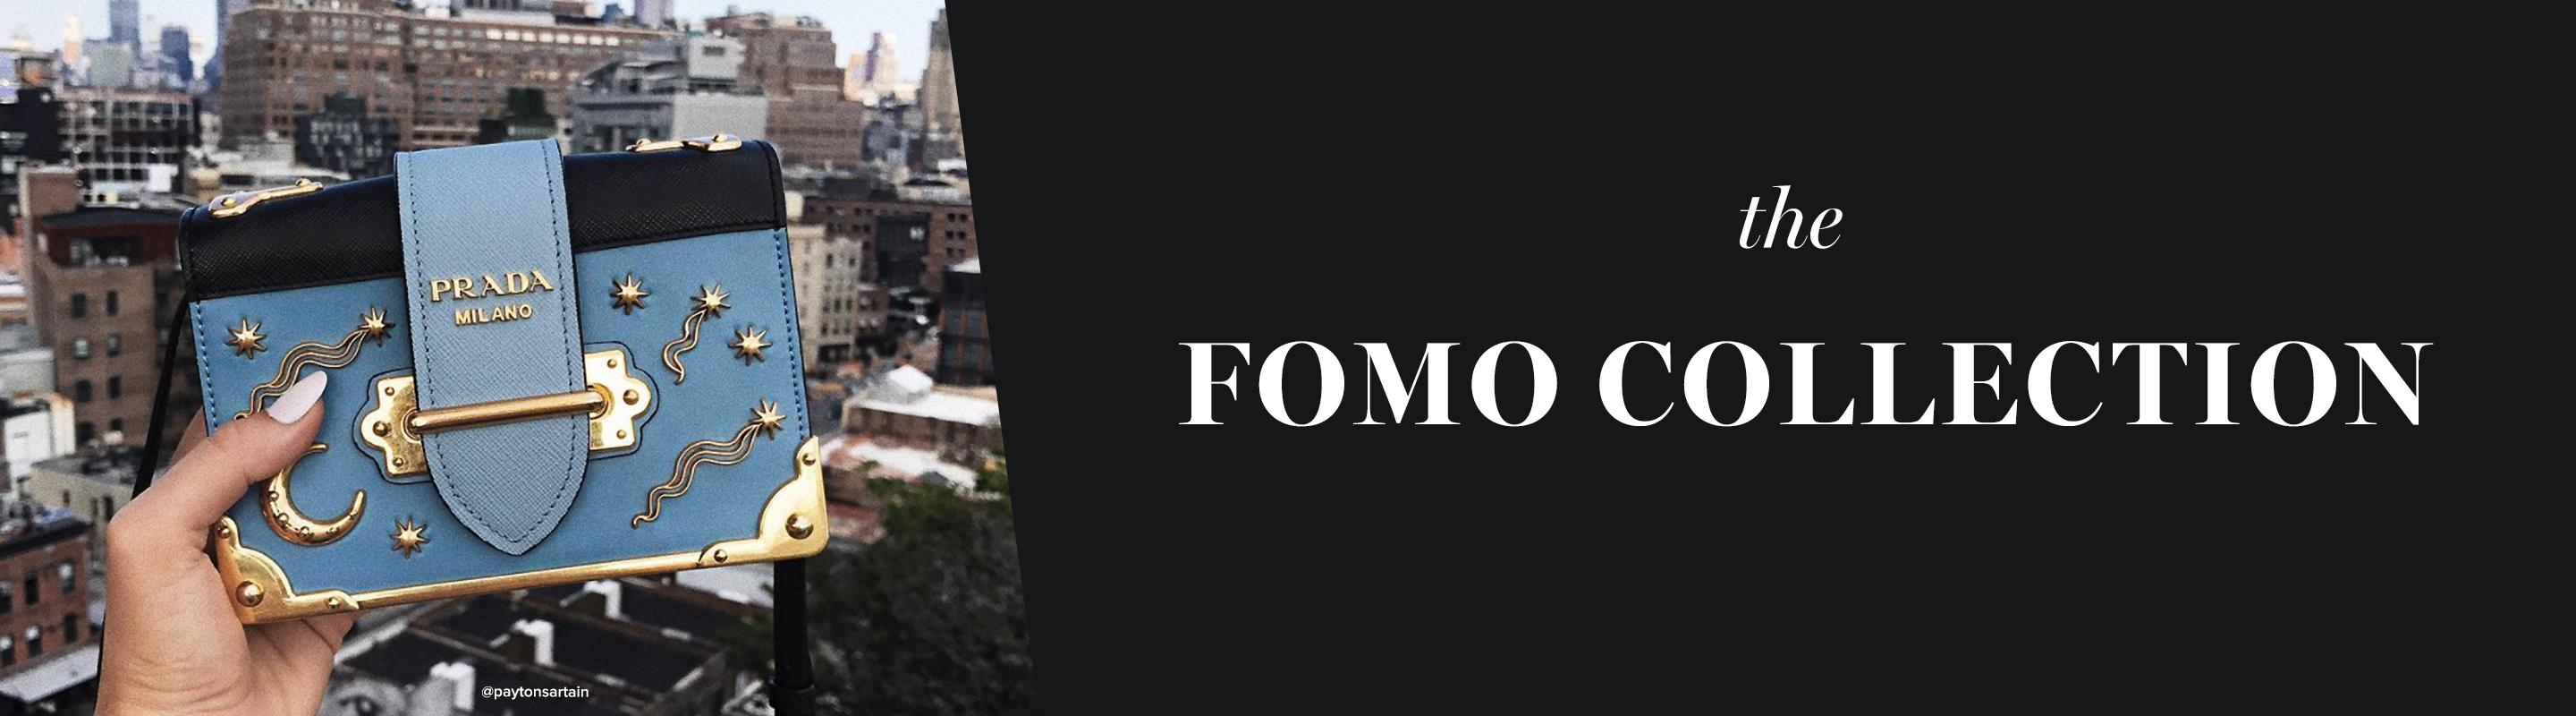 The FOMO Collection